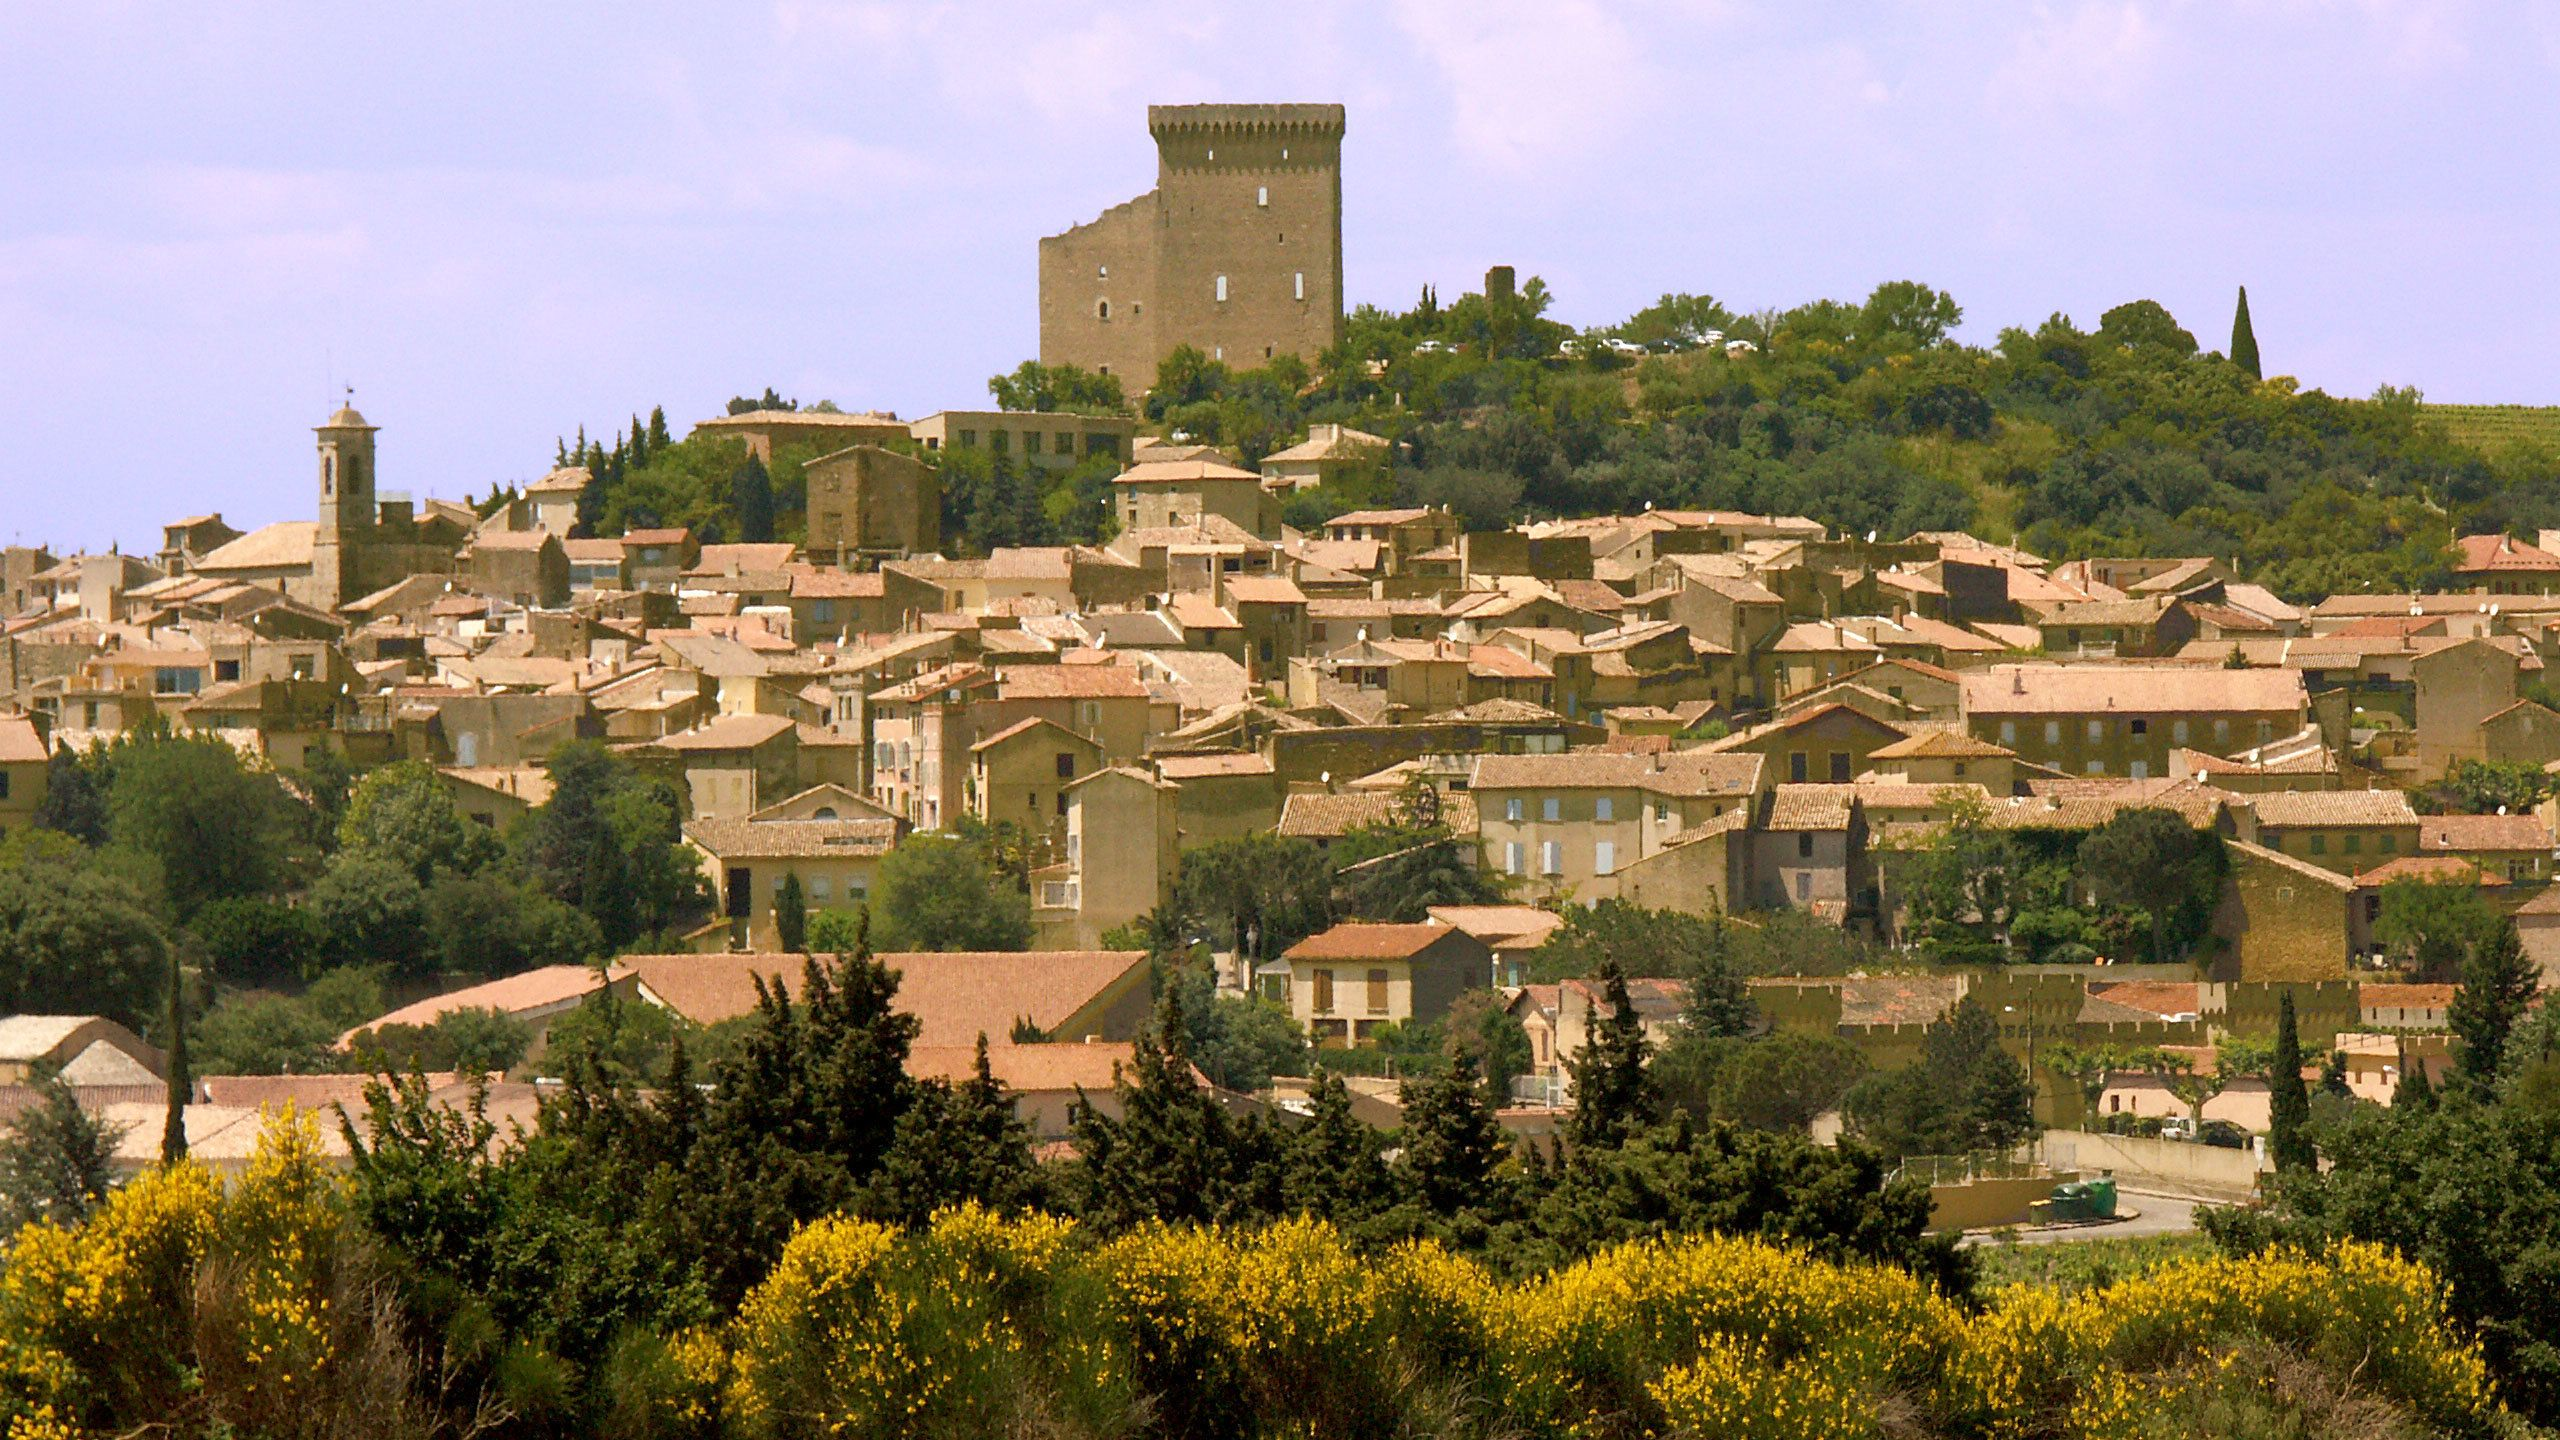 Town in Rhone Valley